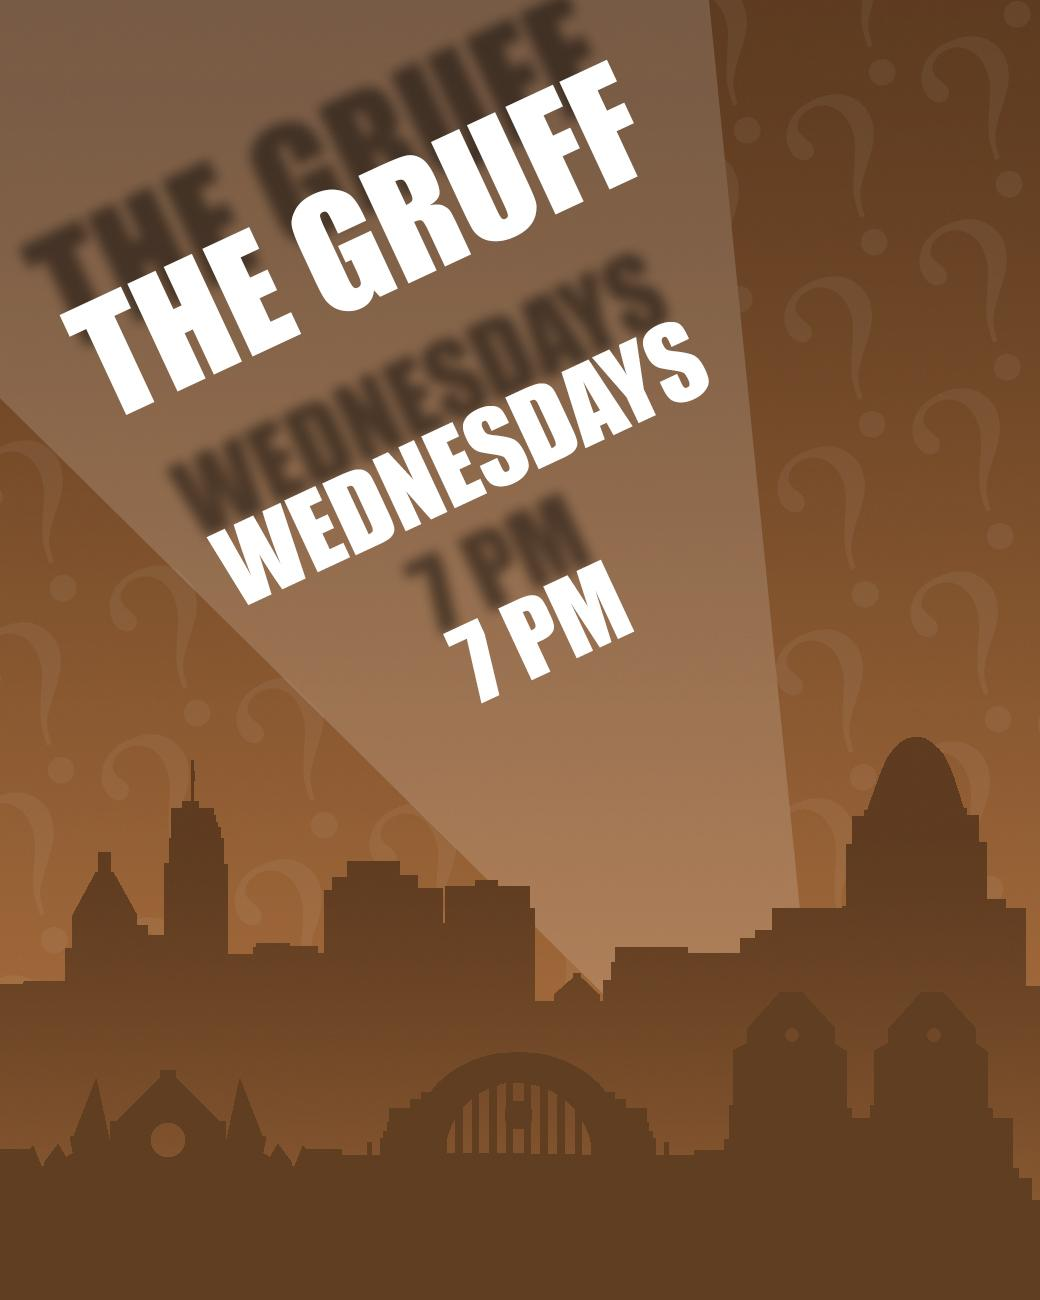 The Gruff has trivia every Wednesday starting at 7 PM. ADDRESS: 129 E. 2nd Street (41011) / Image: Phil Armstrong, Cincinnati Refined // Published: 8.30.17